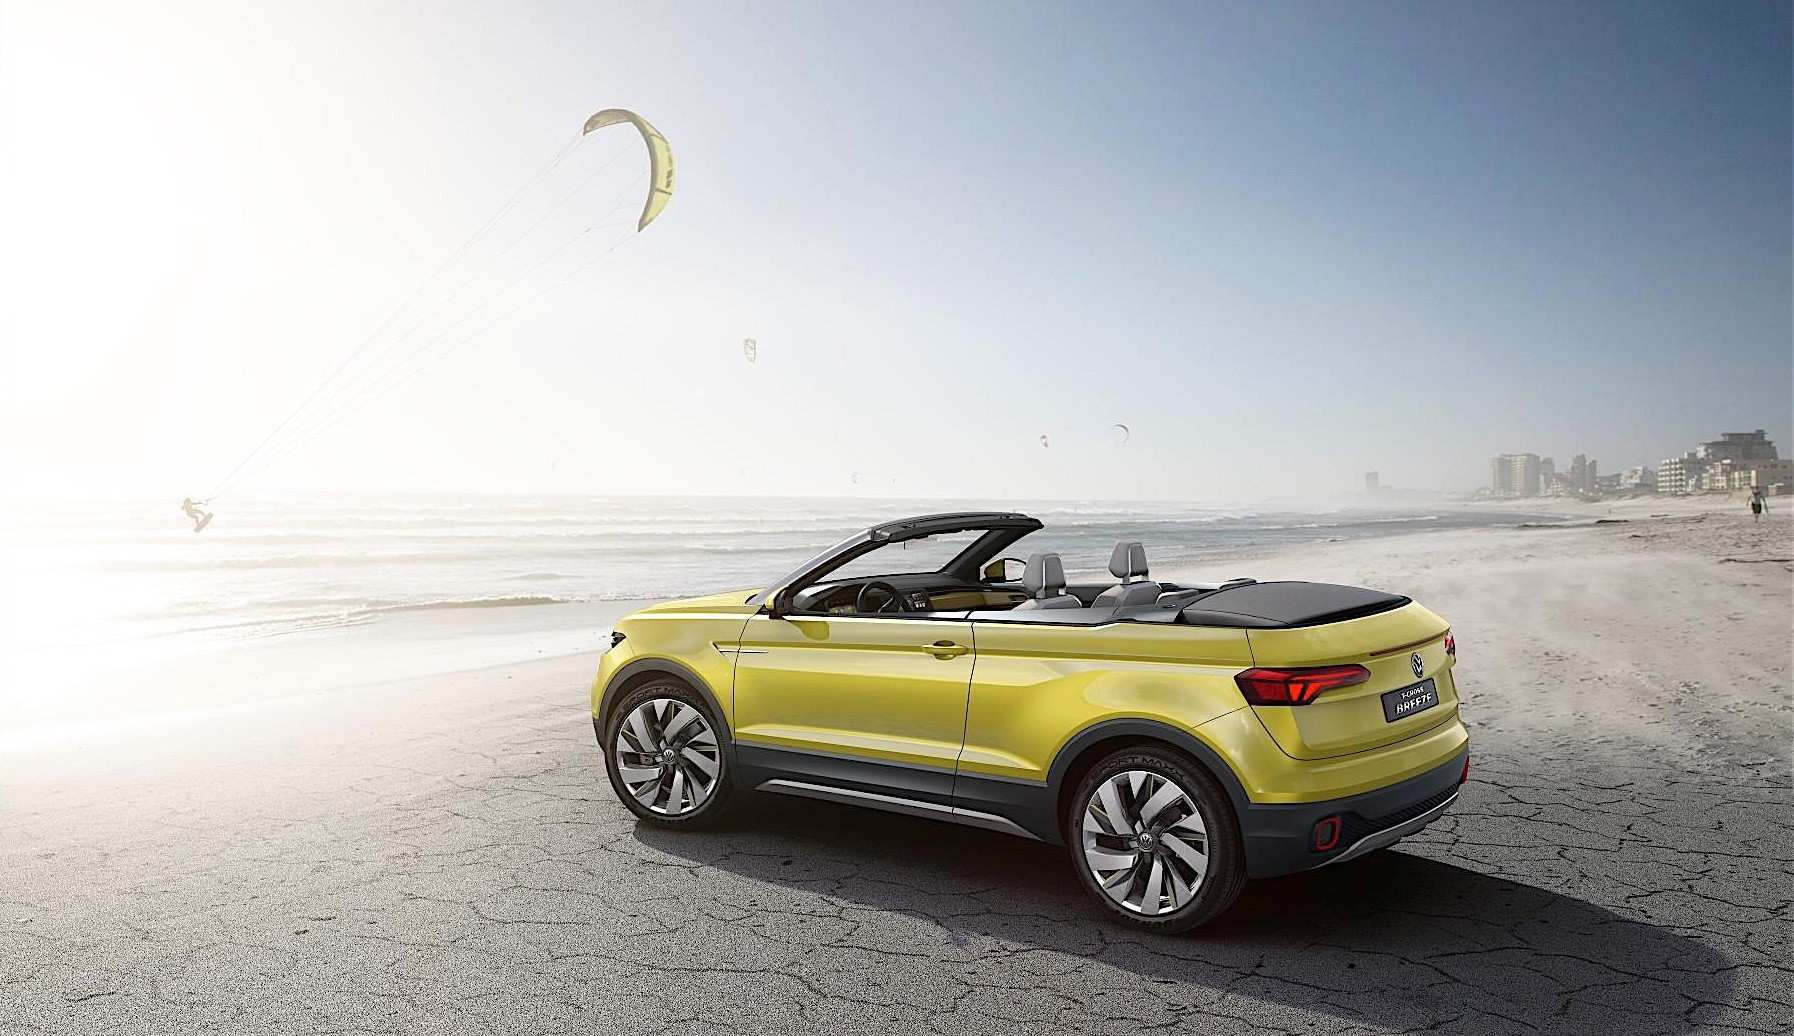 75 All New Volkswagen Convertible 2020 Engine